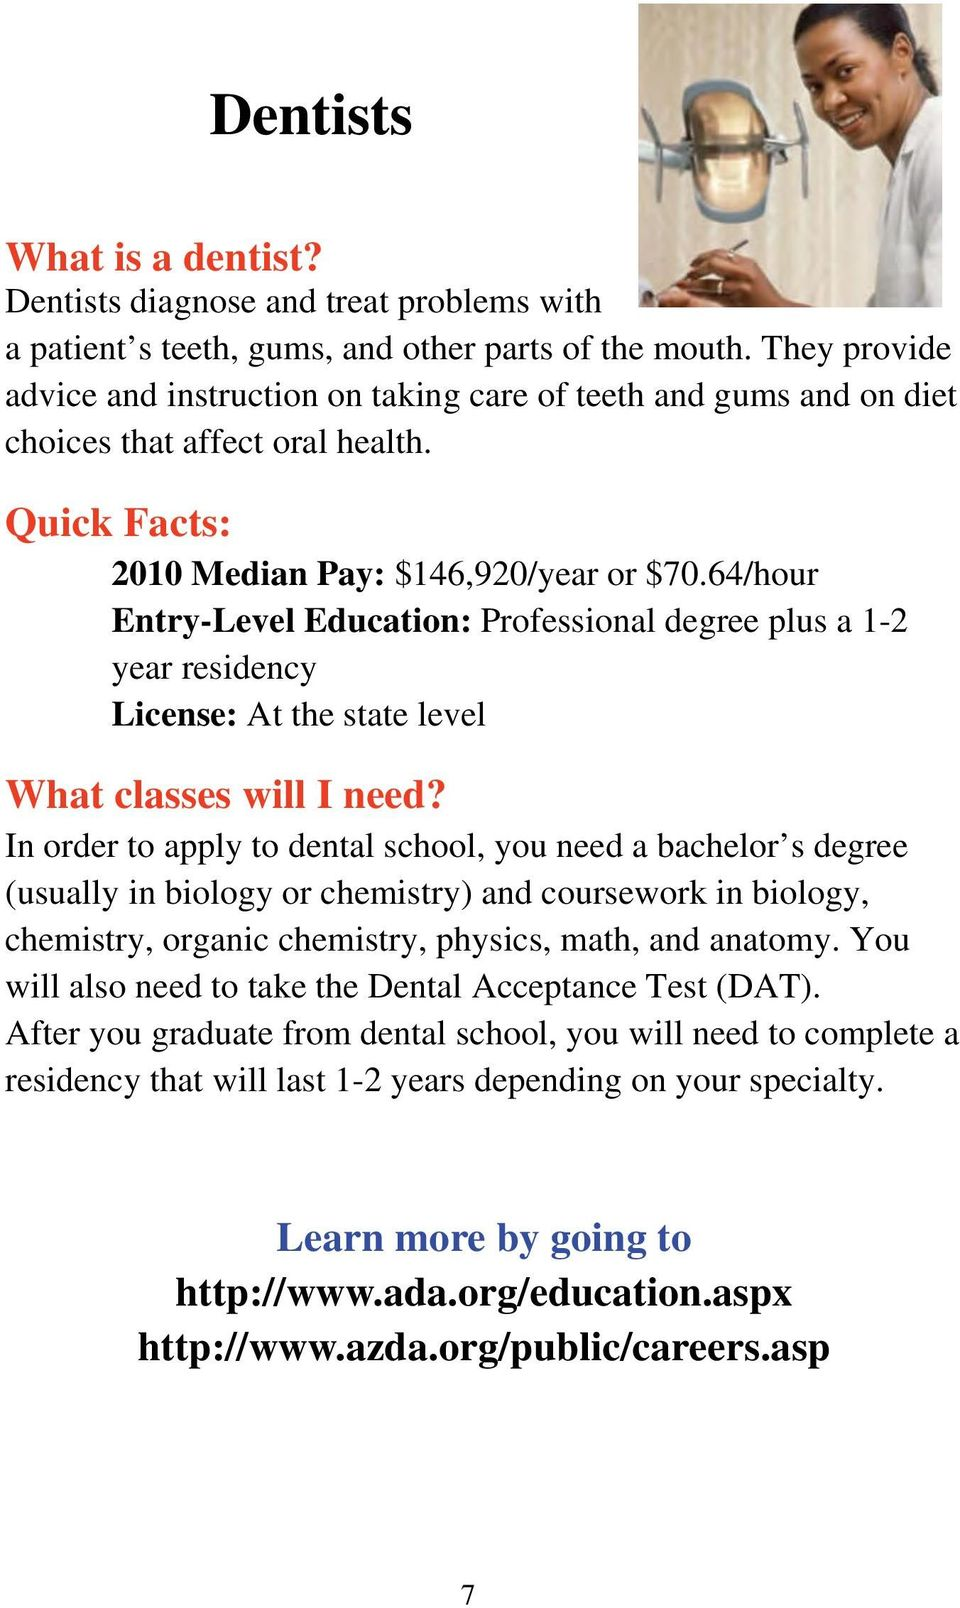 64/hour Entry-Level Education: Professional degree plus a 1-2 year residency License: At the state level In order to apply to dental school, you need a bachelor s degree (usually in biology or